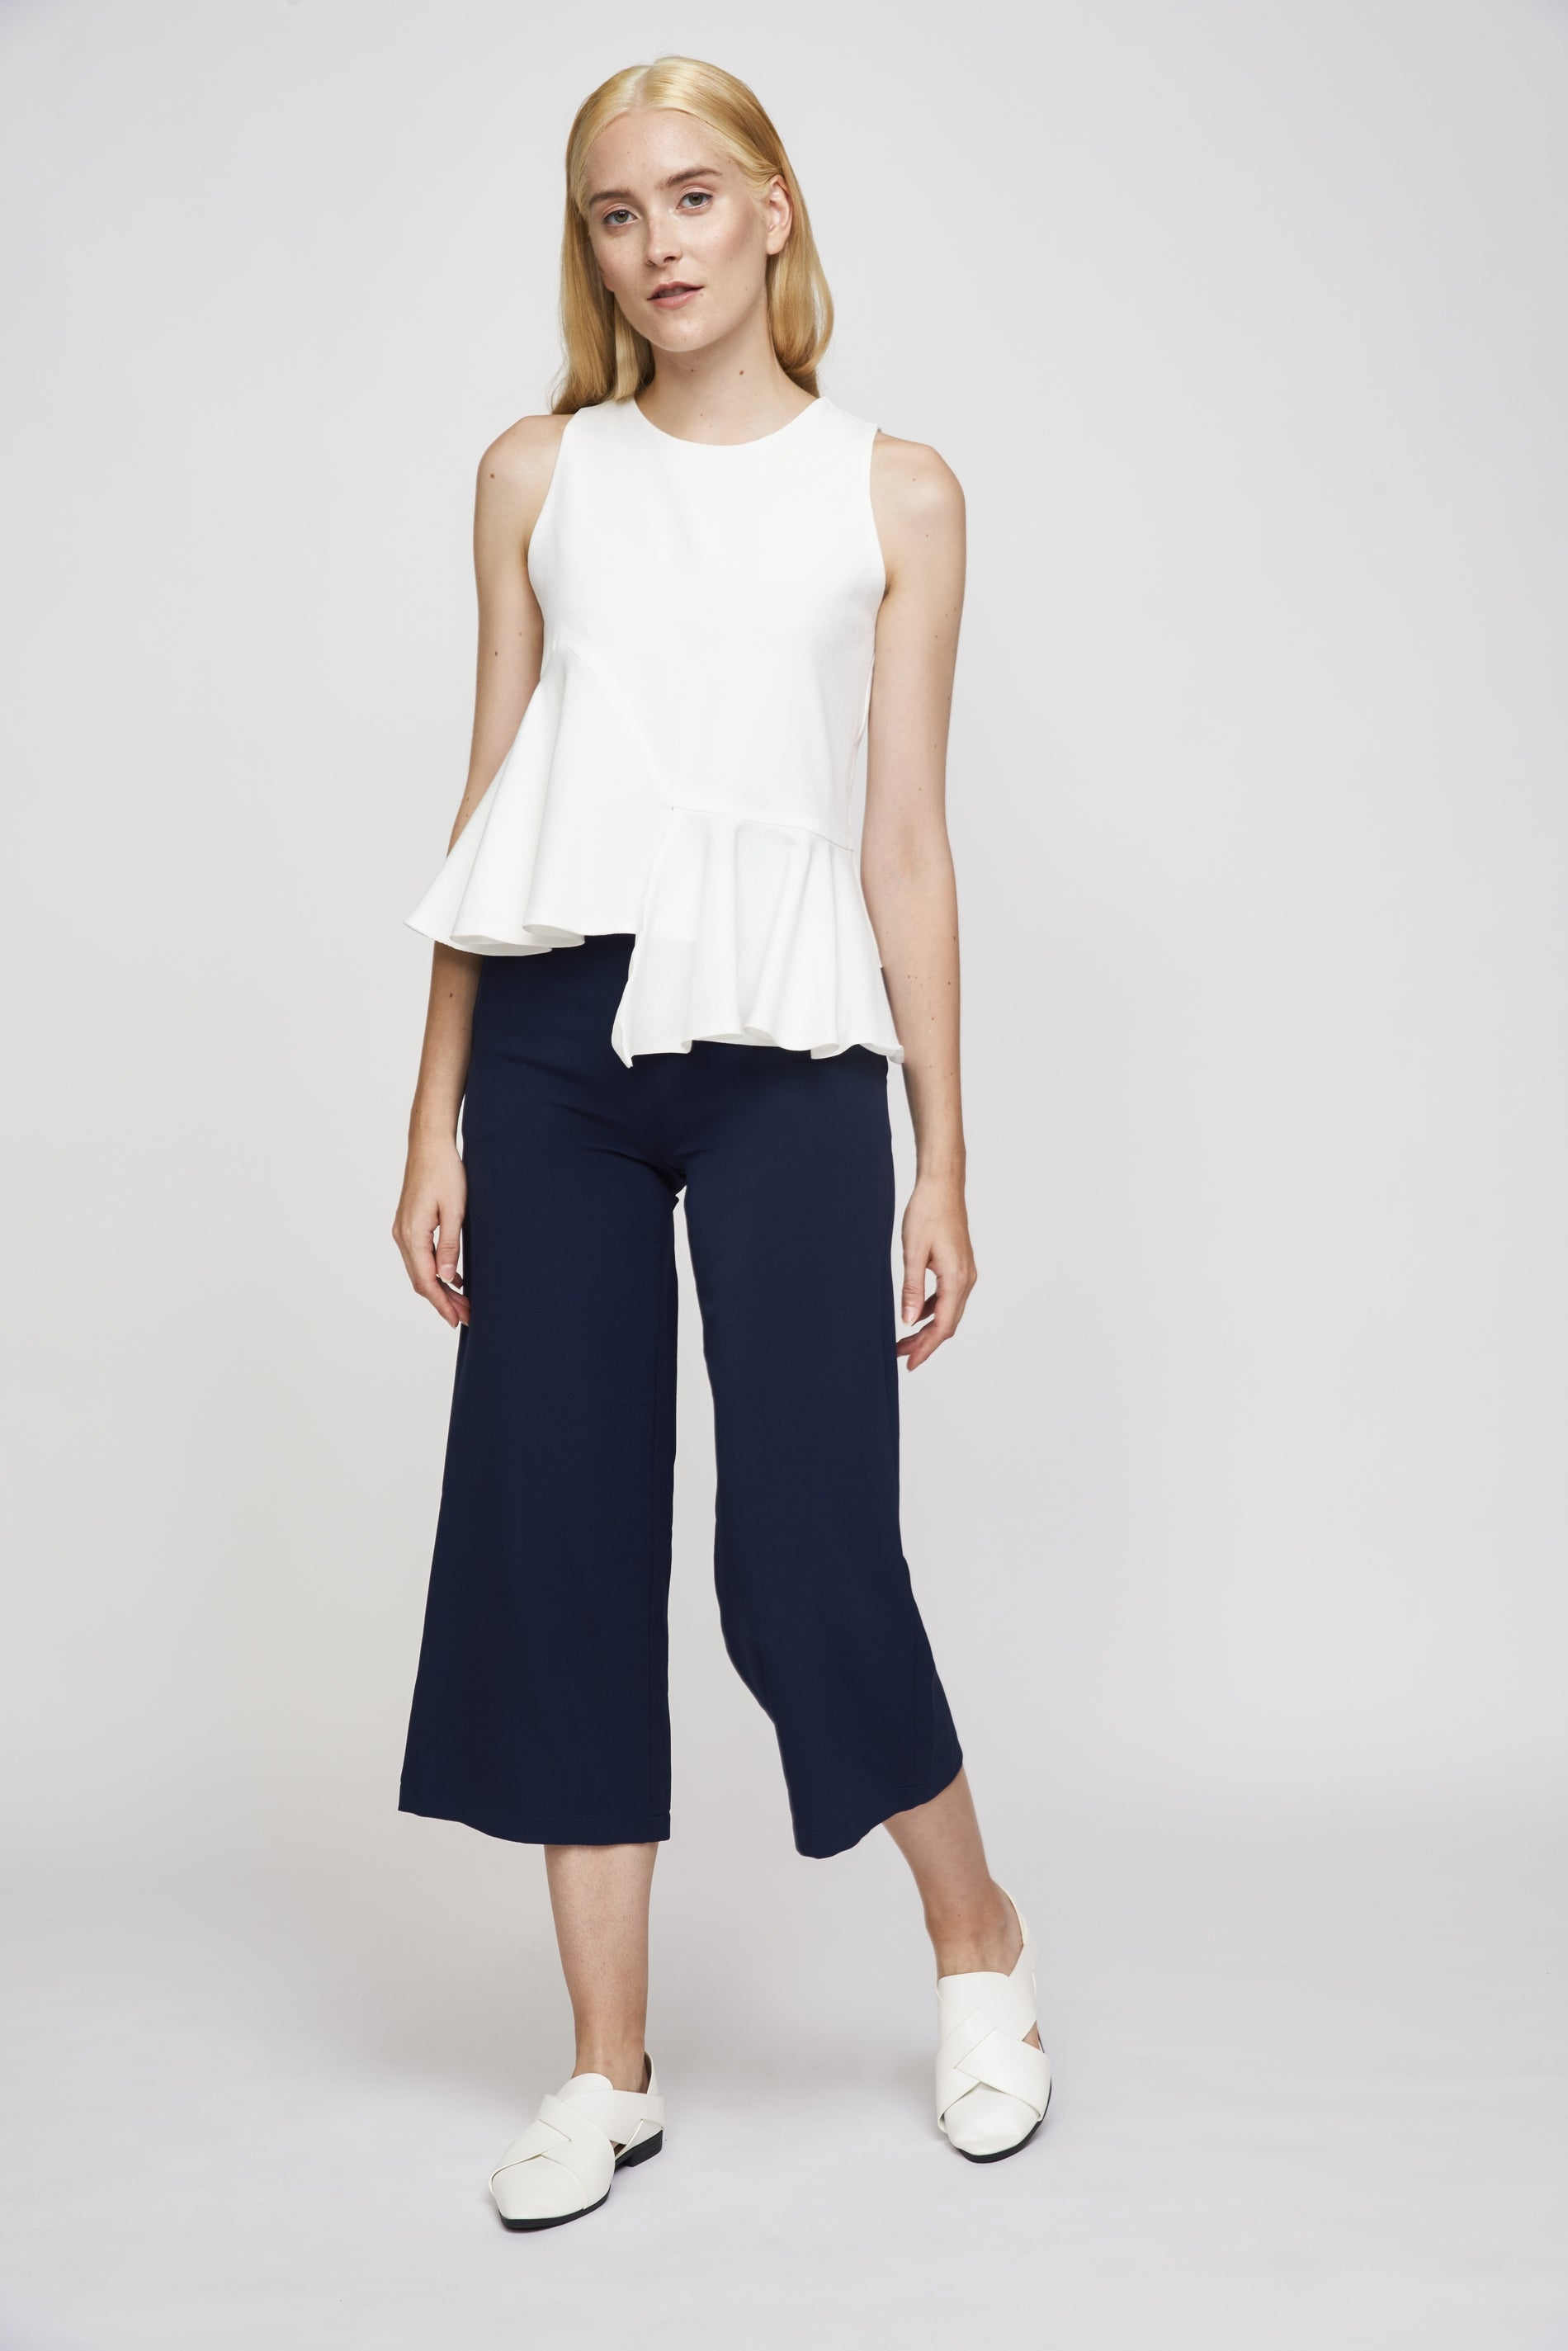 Asymmetric Flare Top in White